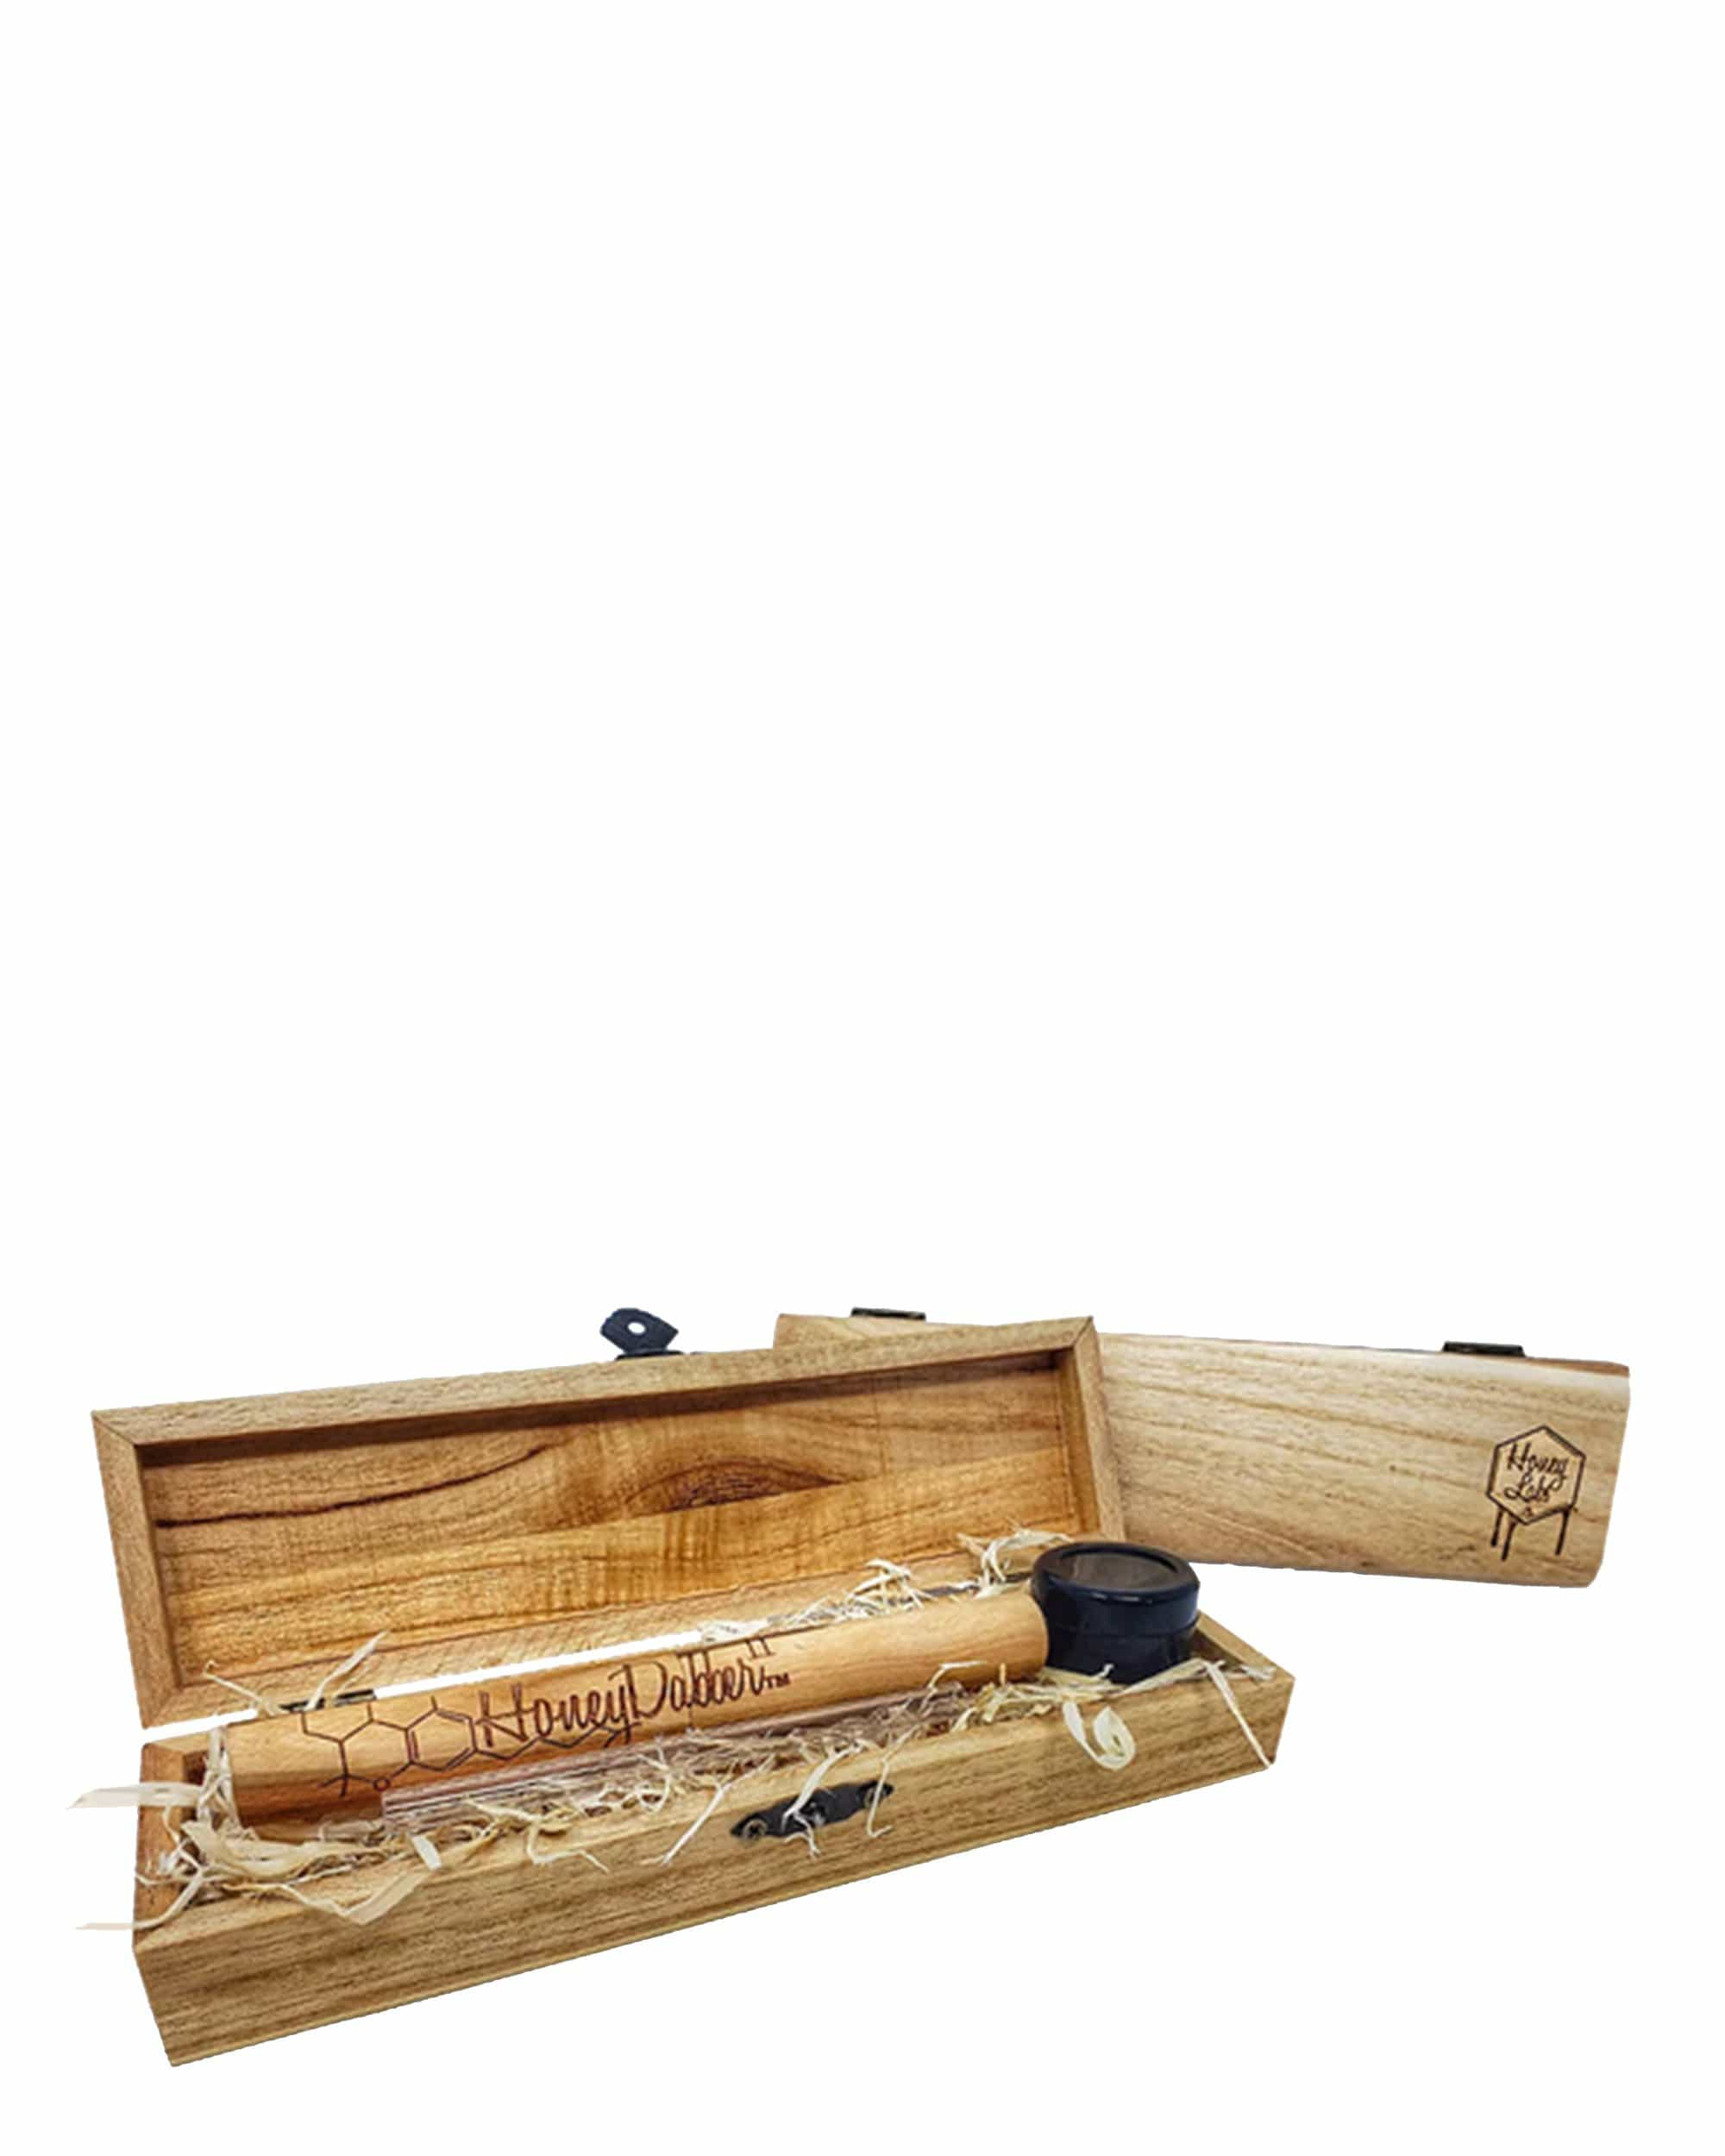 Honey Labs Honey Dabber II Kit